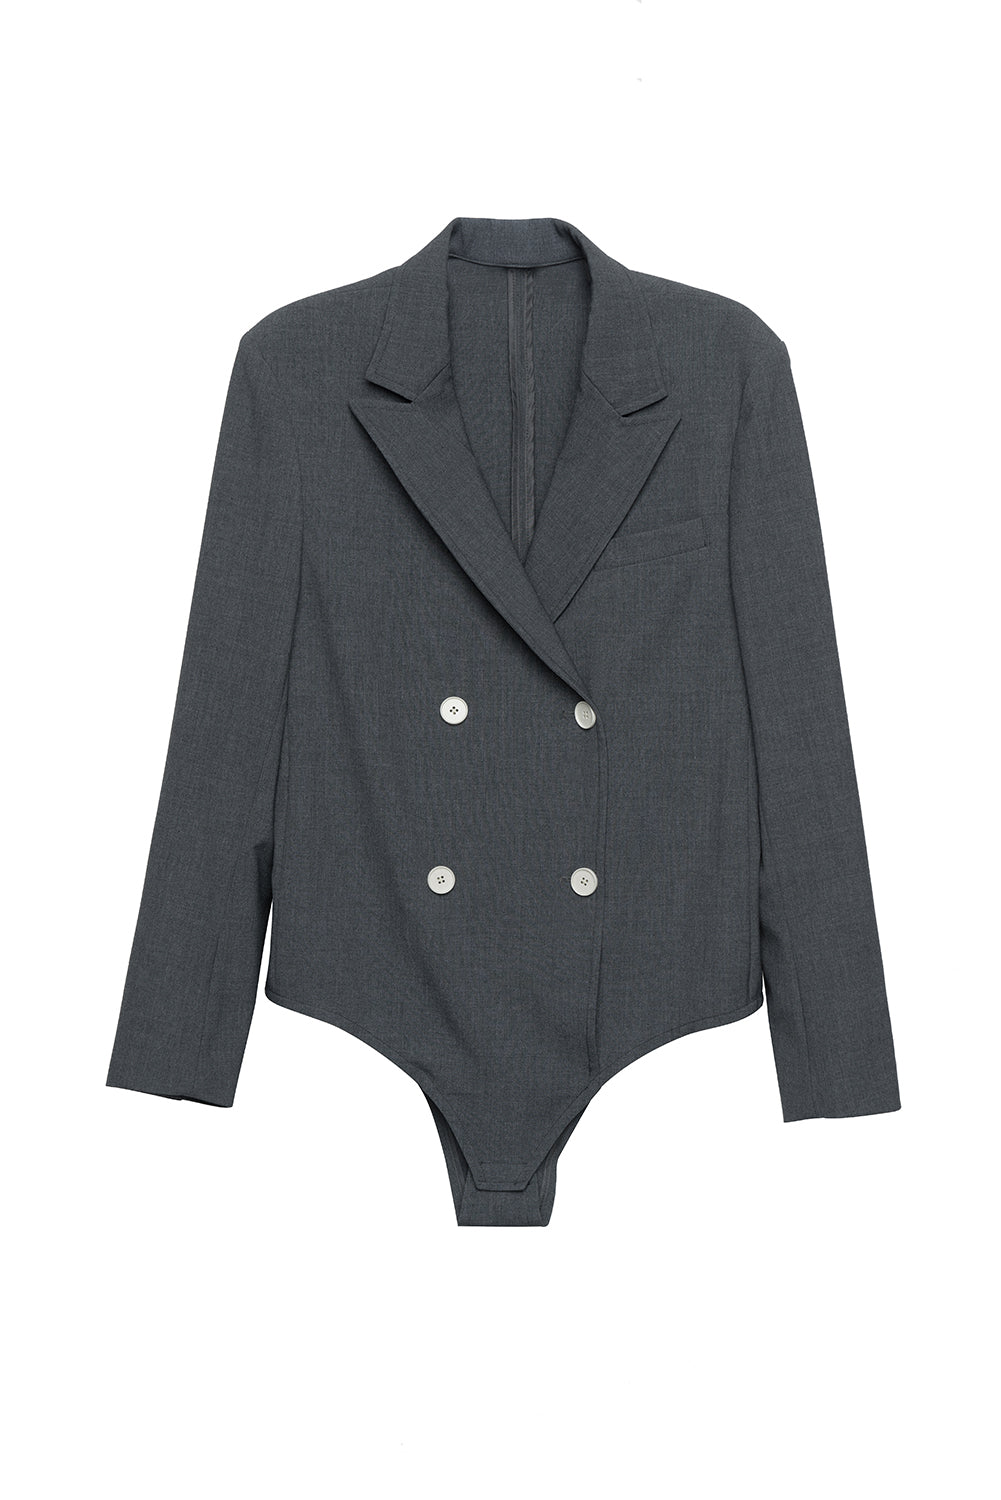 Double-breasted Blazer Style Bodysuit Shirt - front row shop